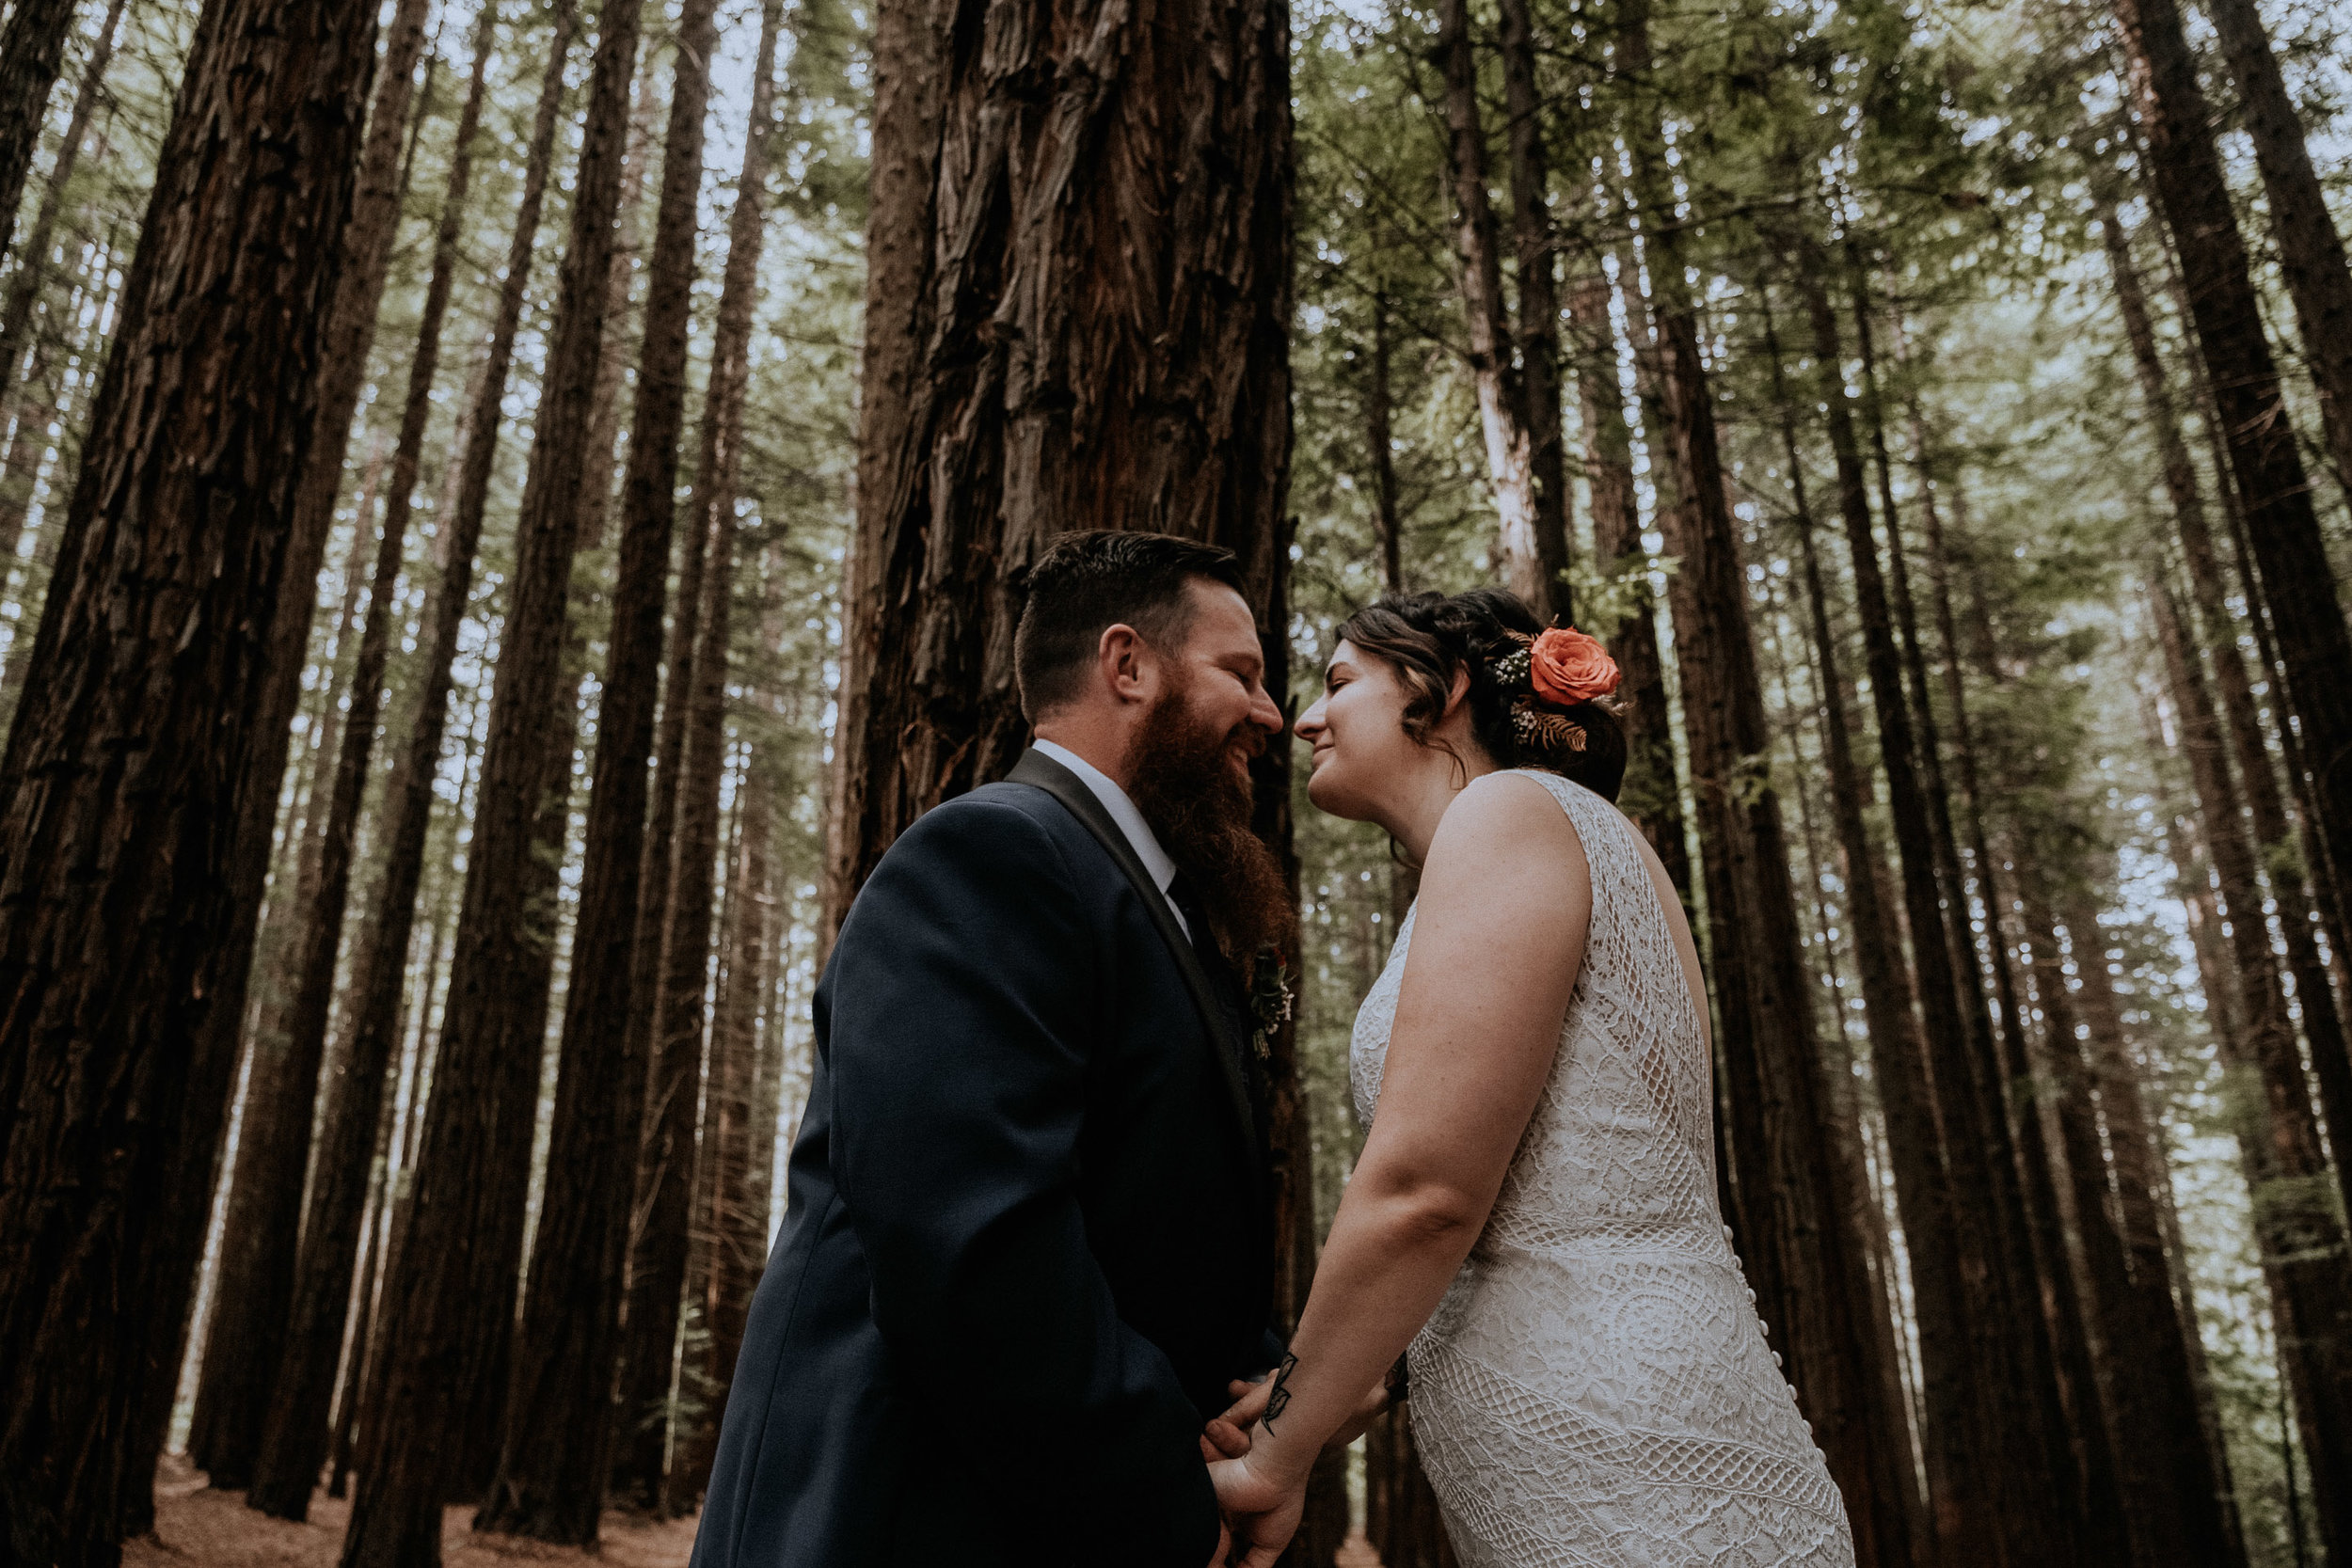 A bride and groom's first kiss at their small wedding, candidly captured with intimate vibes, in the Redwood Forest in Warburton, near Melbourne